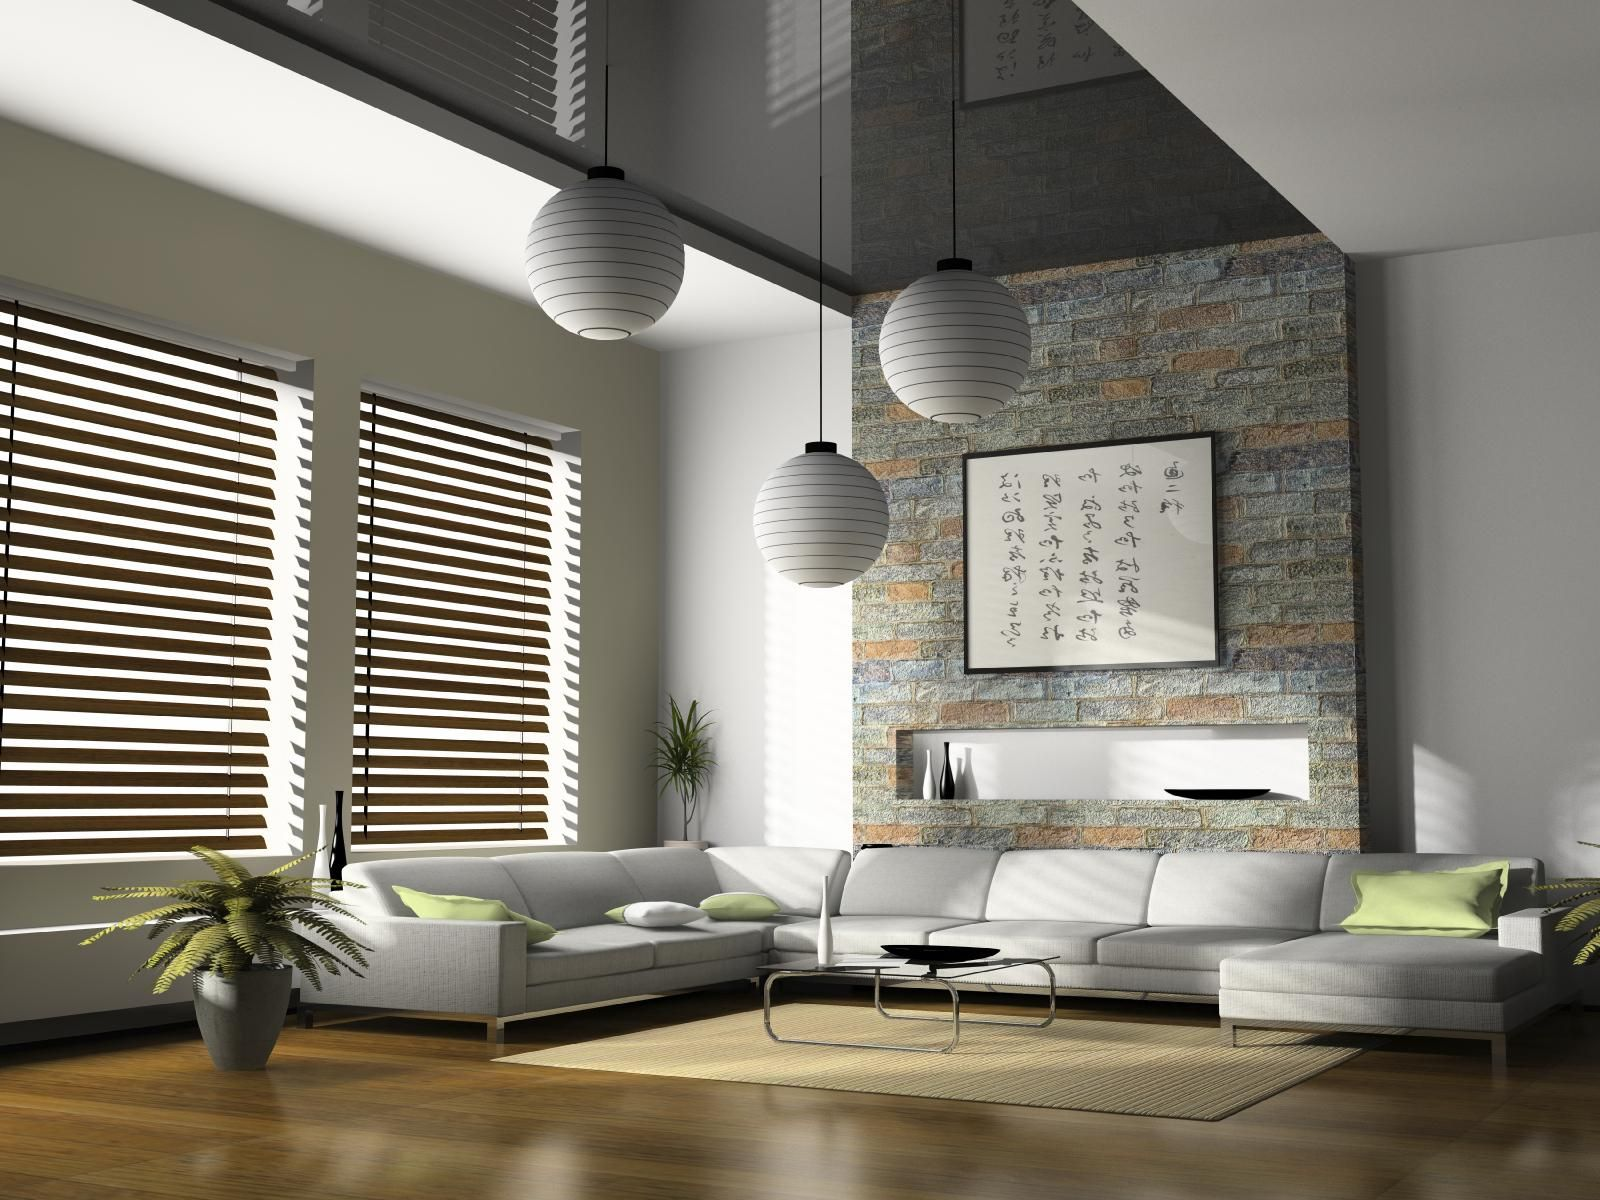 Fashionable window blinds design in modern style living for Living room window treatments